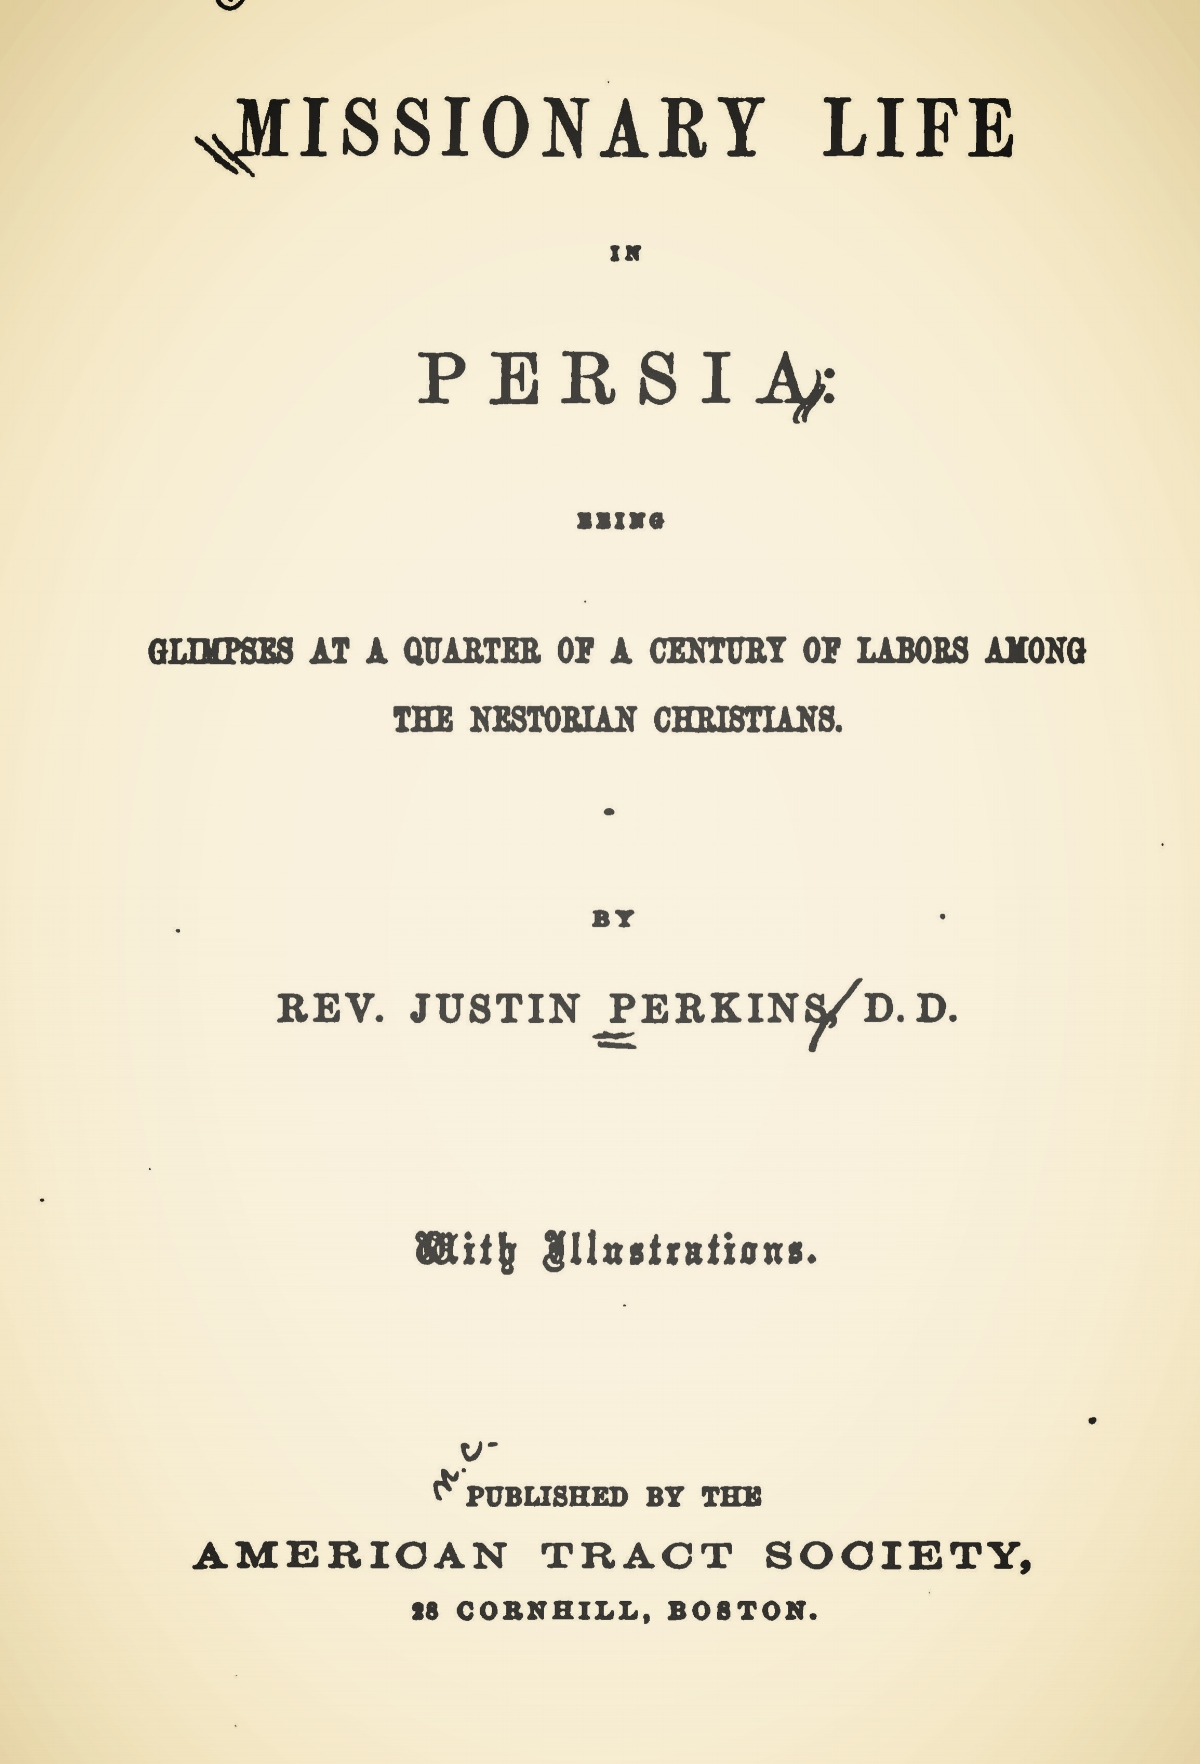 Perkins, Justin, Missionary Life in Persia Title Page.jpg